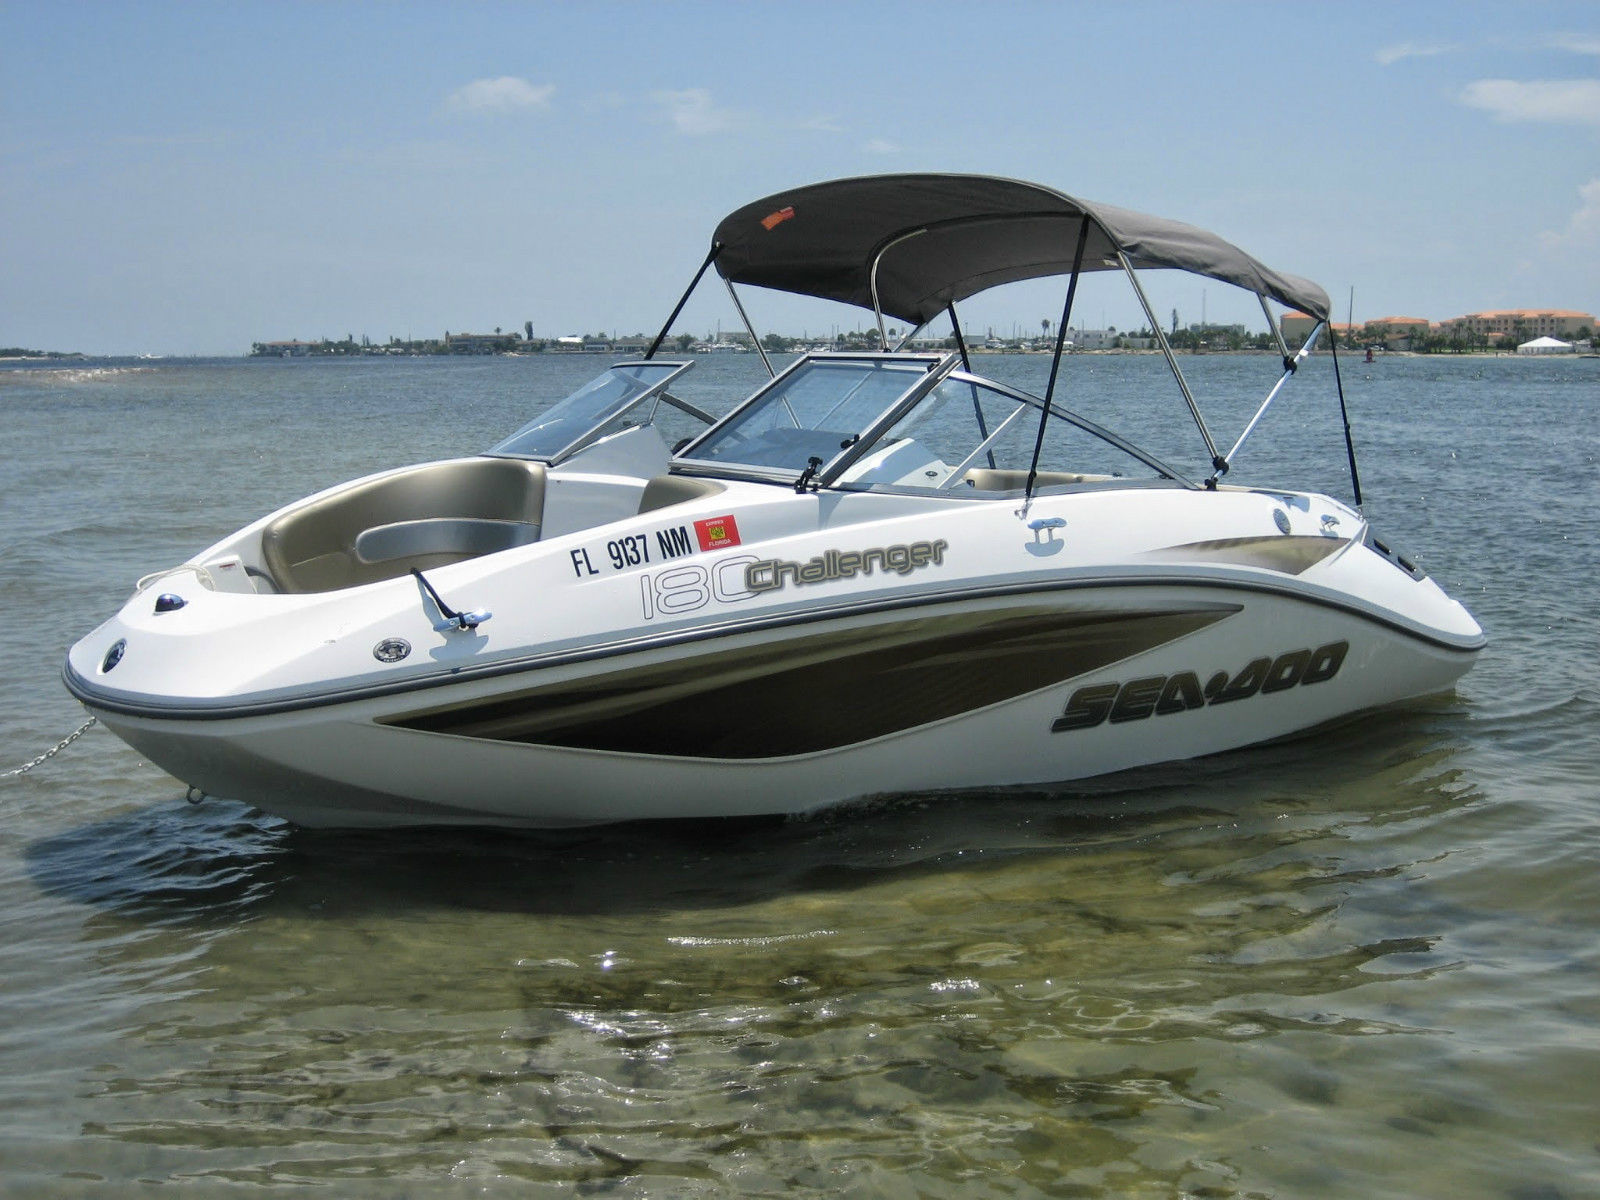 Sea Doo Challenger 180 Se 2007 For Sale For 15 000